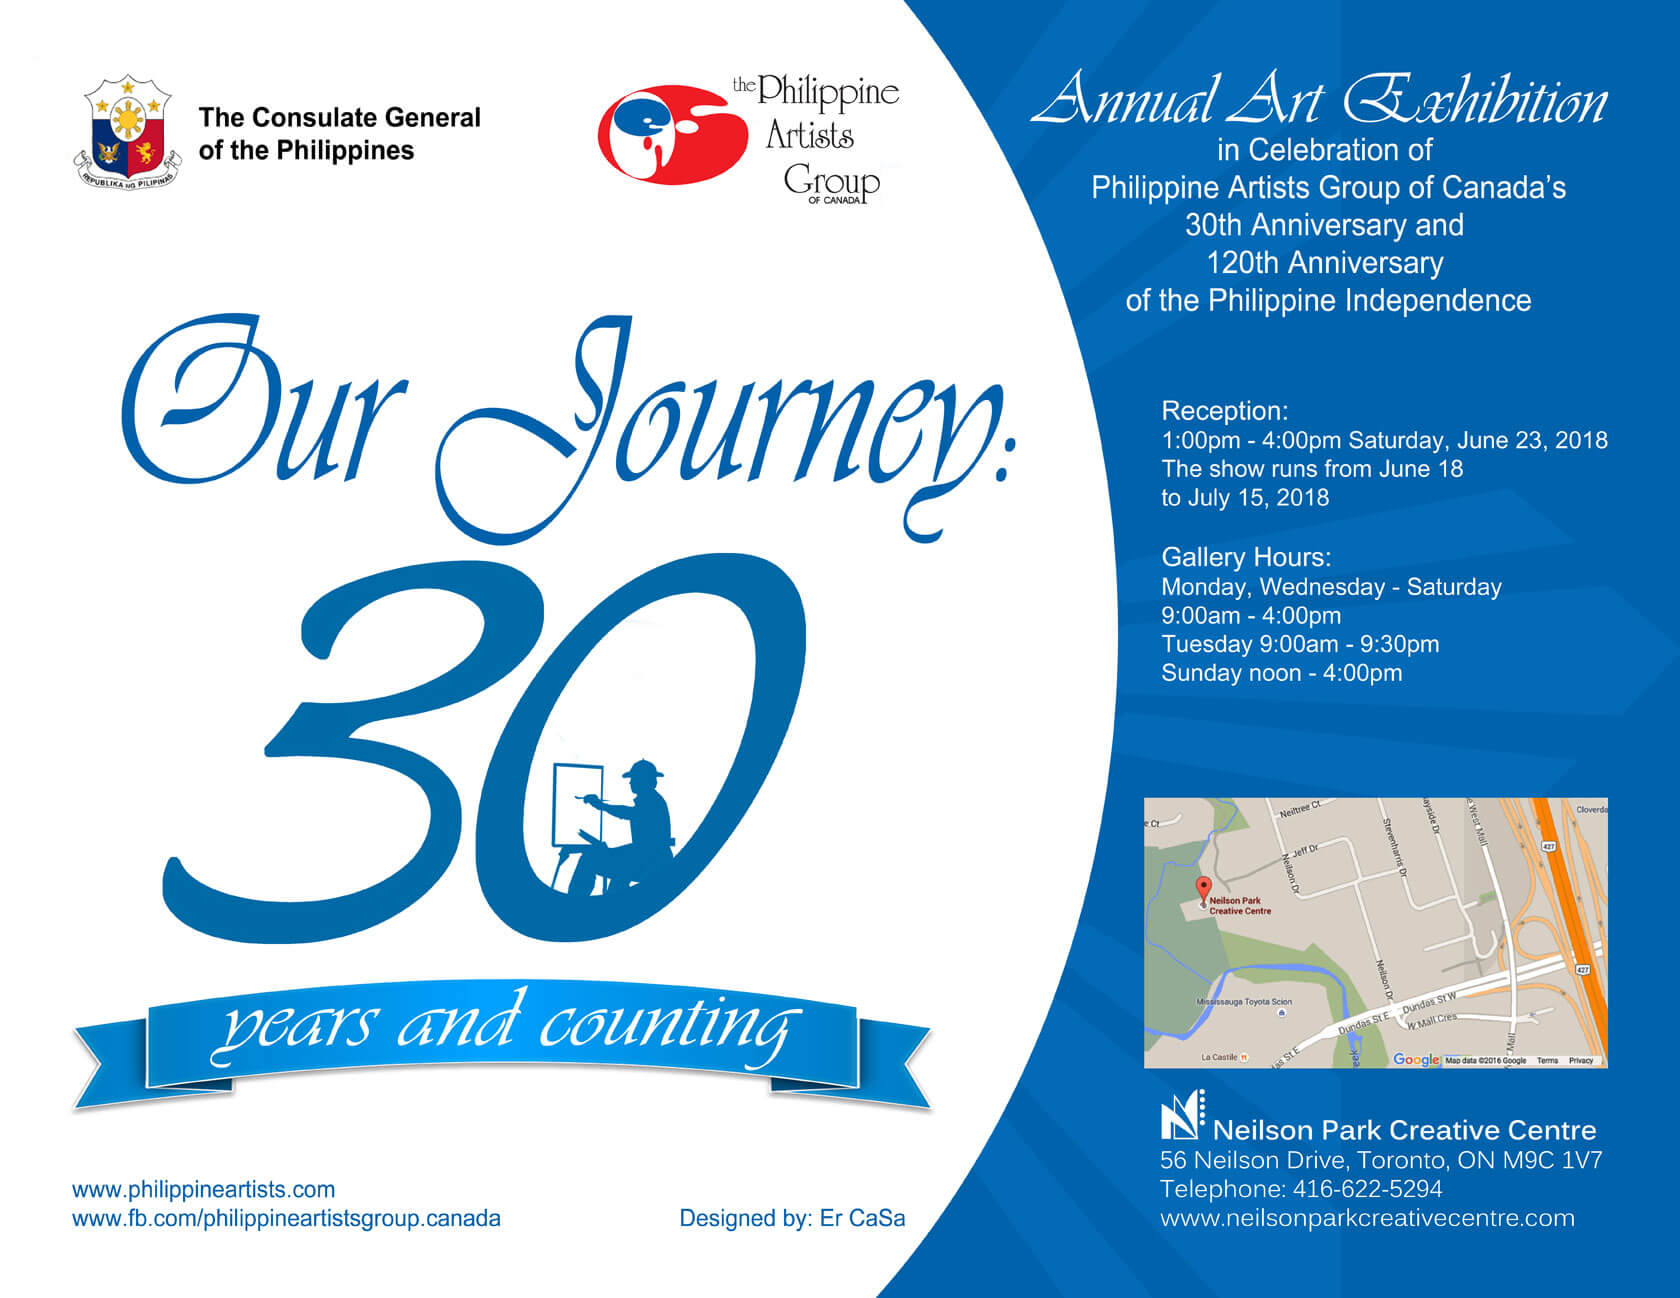 Our Journey: 30 years and counting - An annual Art Exhibition in Celebration of the Philippine Artists Group of Canada's 30th Anniversary and the 120th Anniversary of the Declaration of Philippine Independence.